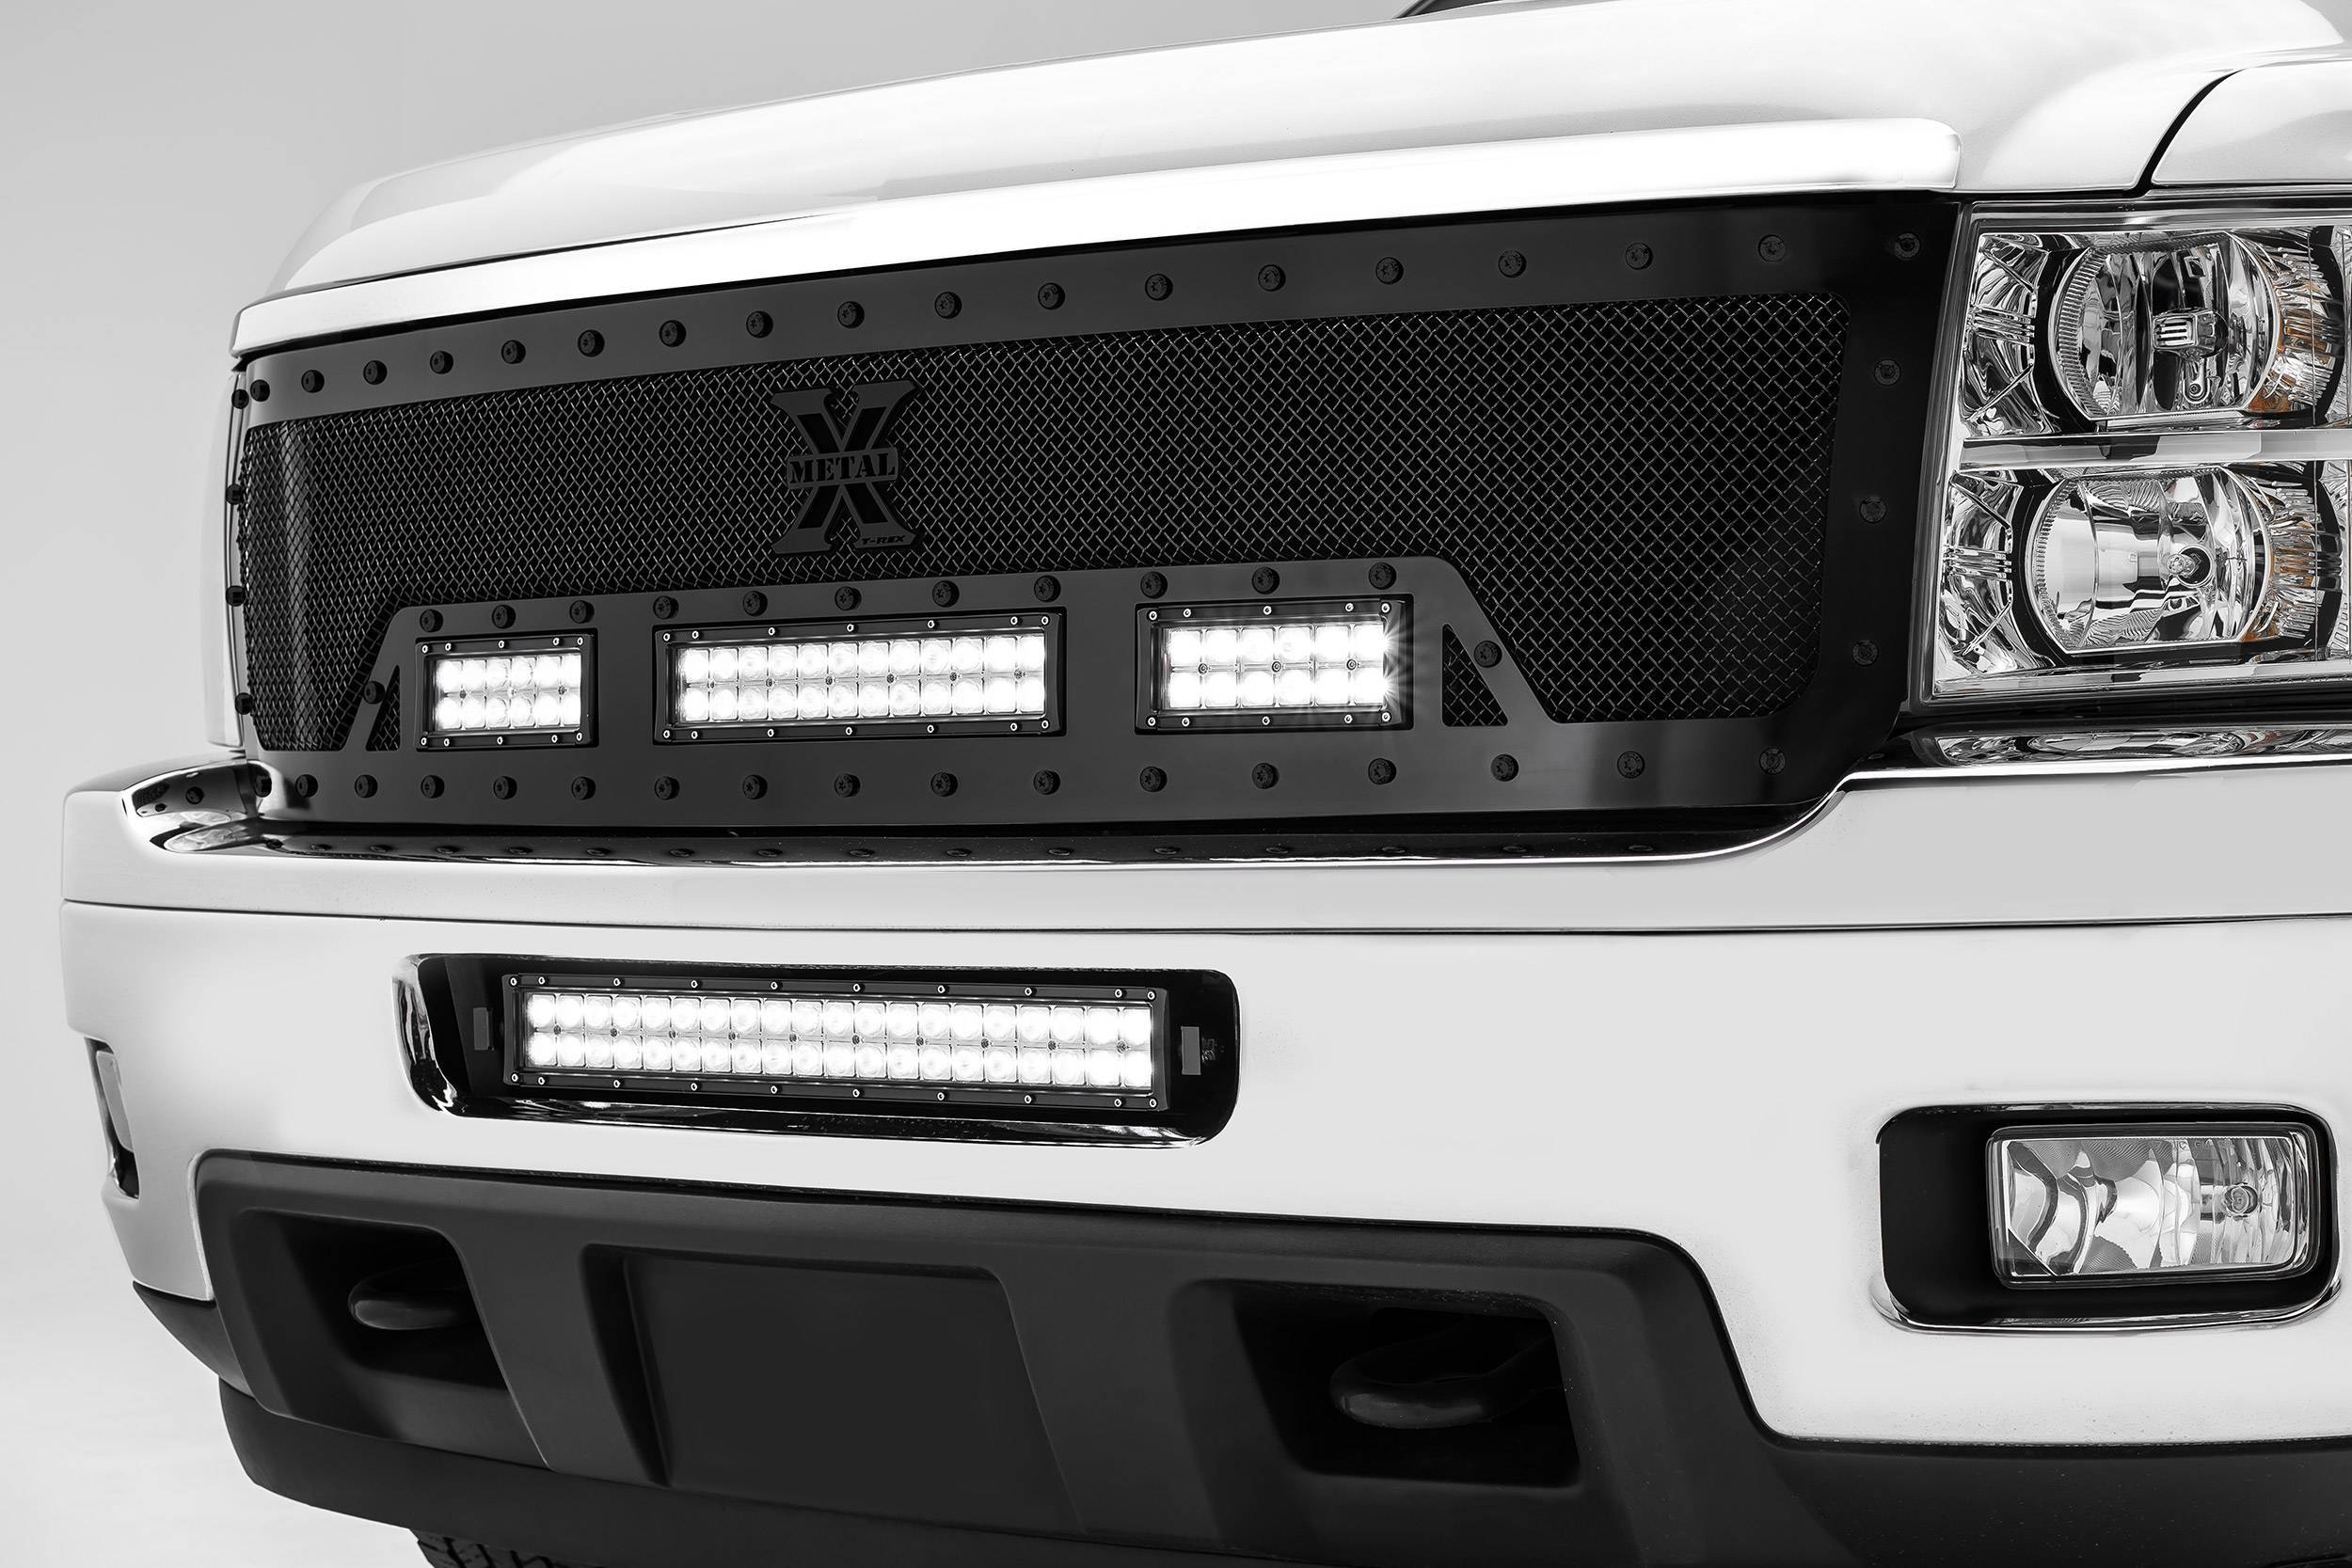 ZROADZ - 2011-2013 Chevrolet Silverado 2500, 3500 Front Bumper Center LED Bracket to mount 20 Inch LED Light Bar - PN #Z321151